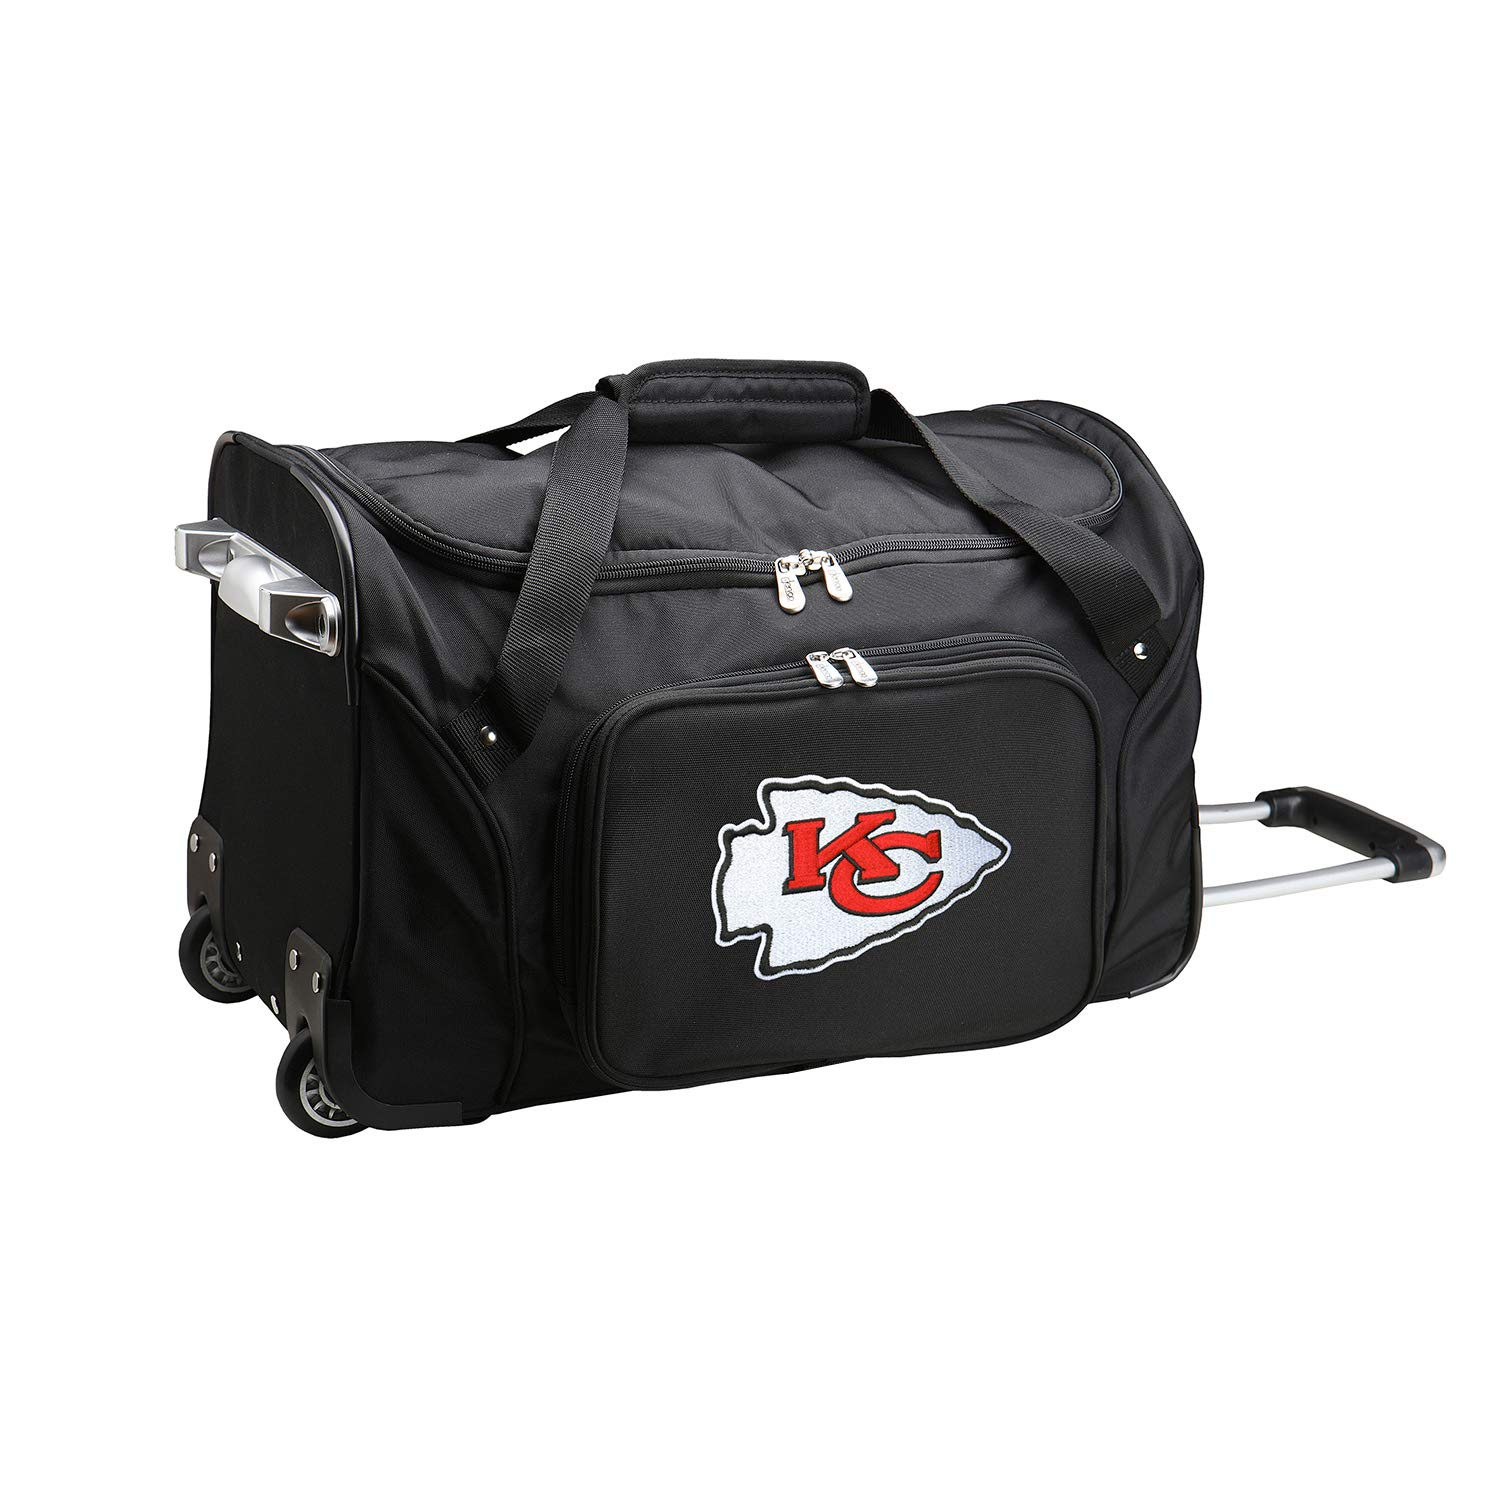 NFL Kansas City Chiefs Wheeled Duffle Bag, 22 x 12 x 5.5, Black by Denco